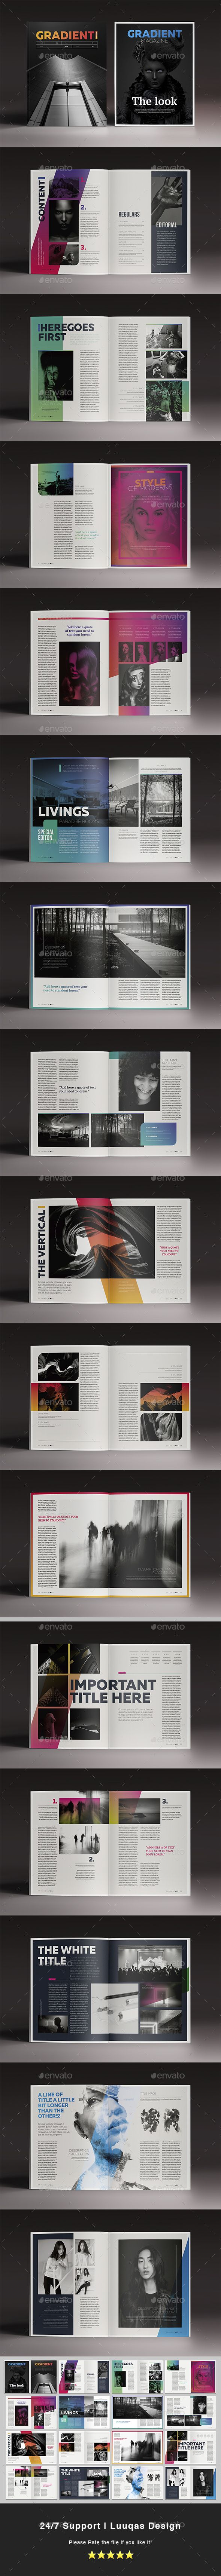 Gradient Magazine 32 Pages Letter Size and A4 Size Template InDesign INDD